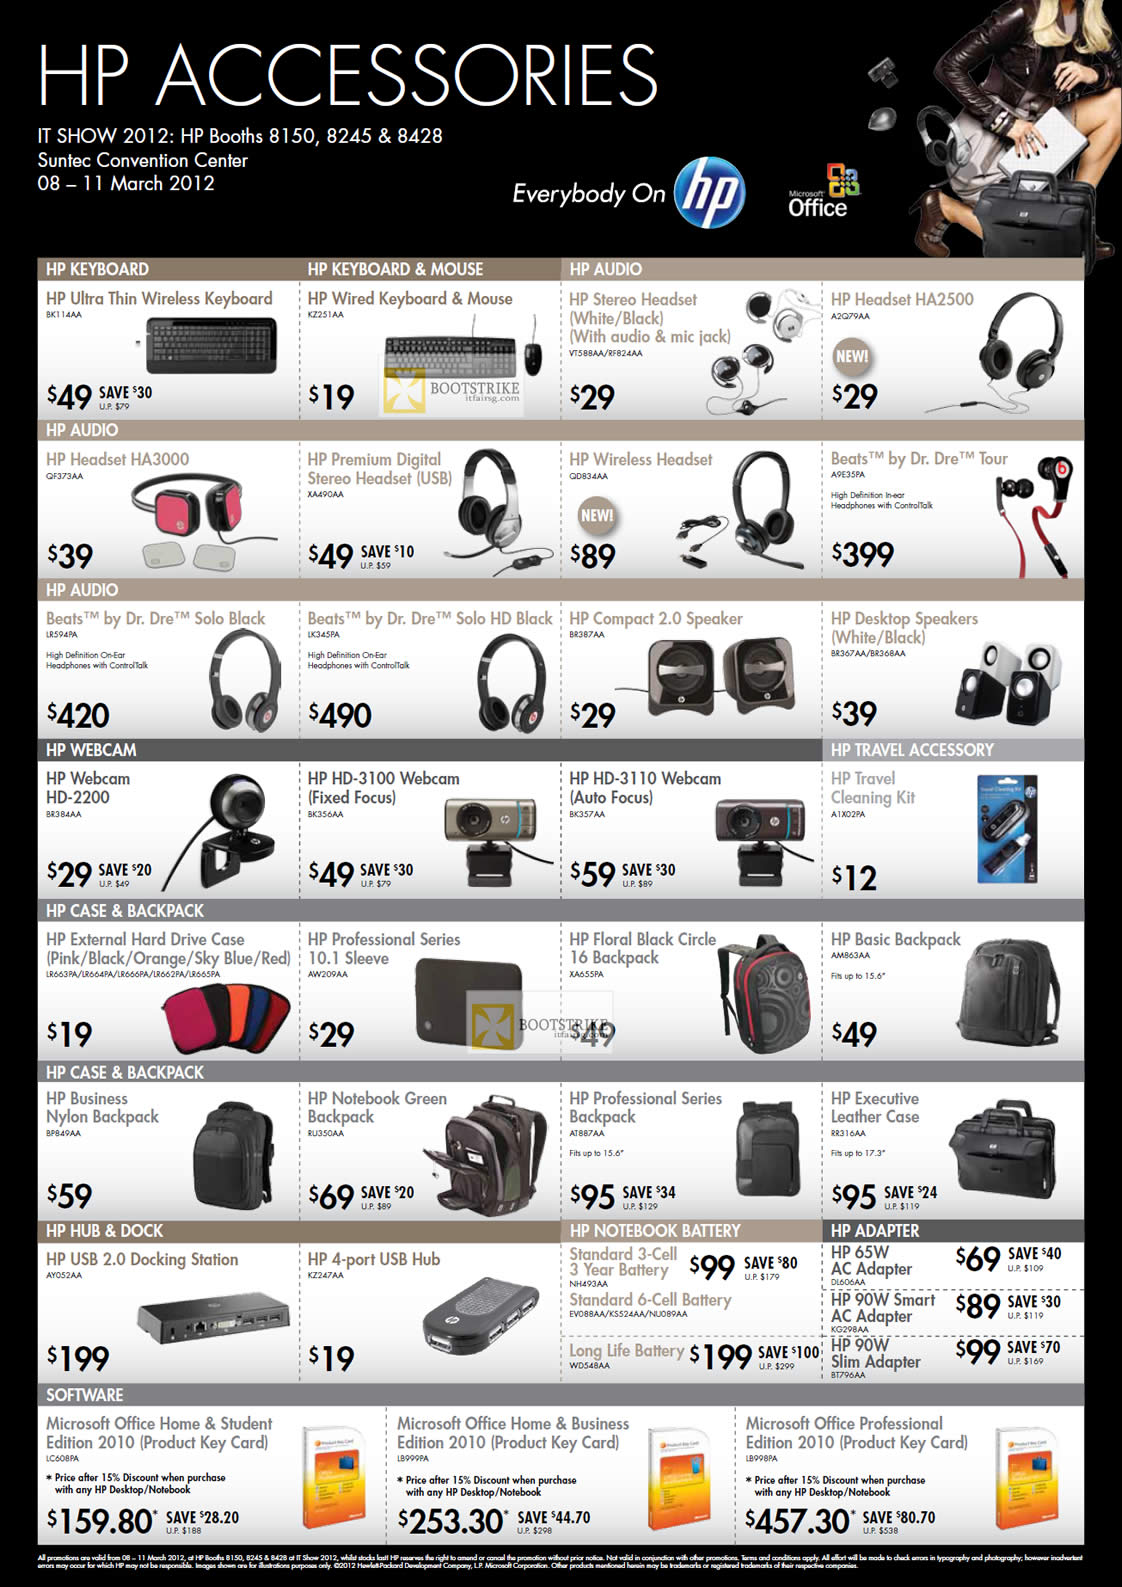 IT SHOW 2012 price list image brochure of HP Accessories Keyboard, Mouse, Headphones Headset Beats Dr Dre Solo, Webcam, Professional Sleeve, Case, USB Hub, Case, Backpack, Battery, Power Adapter